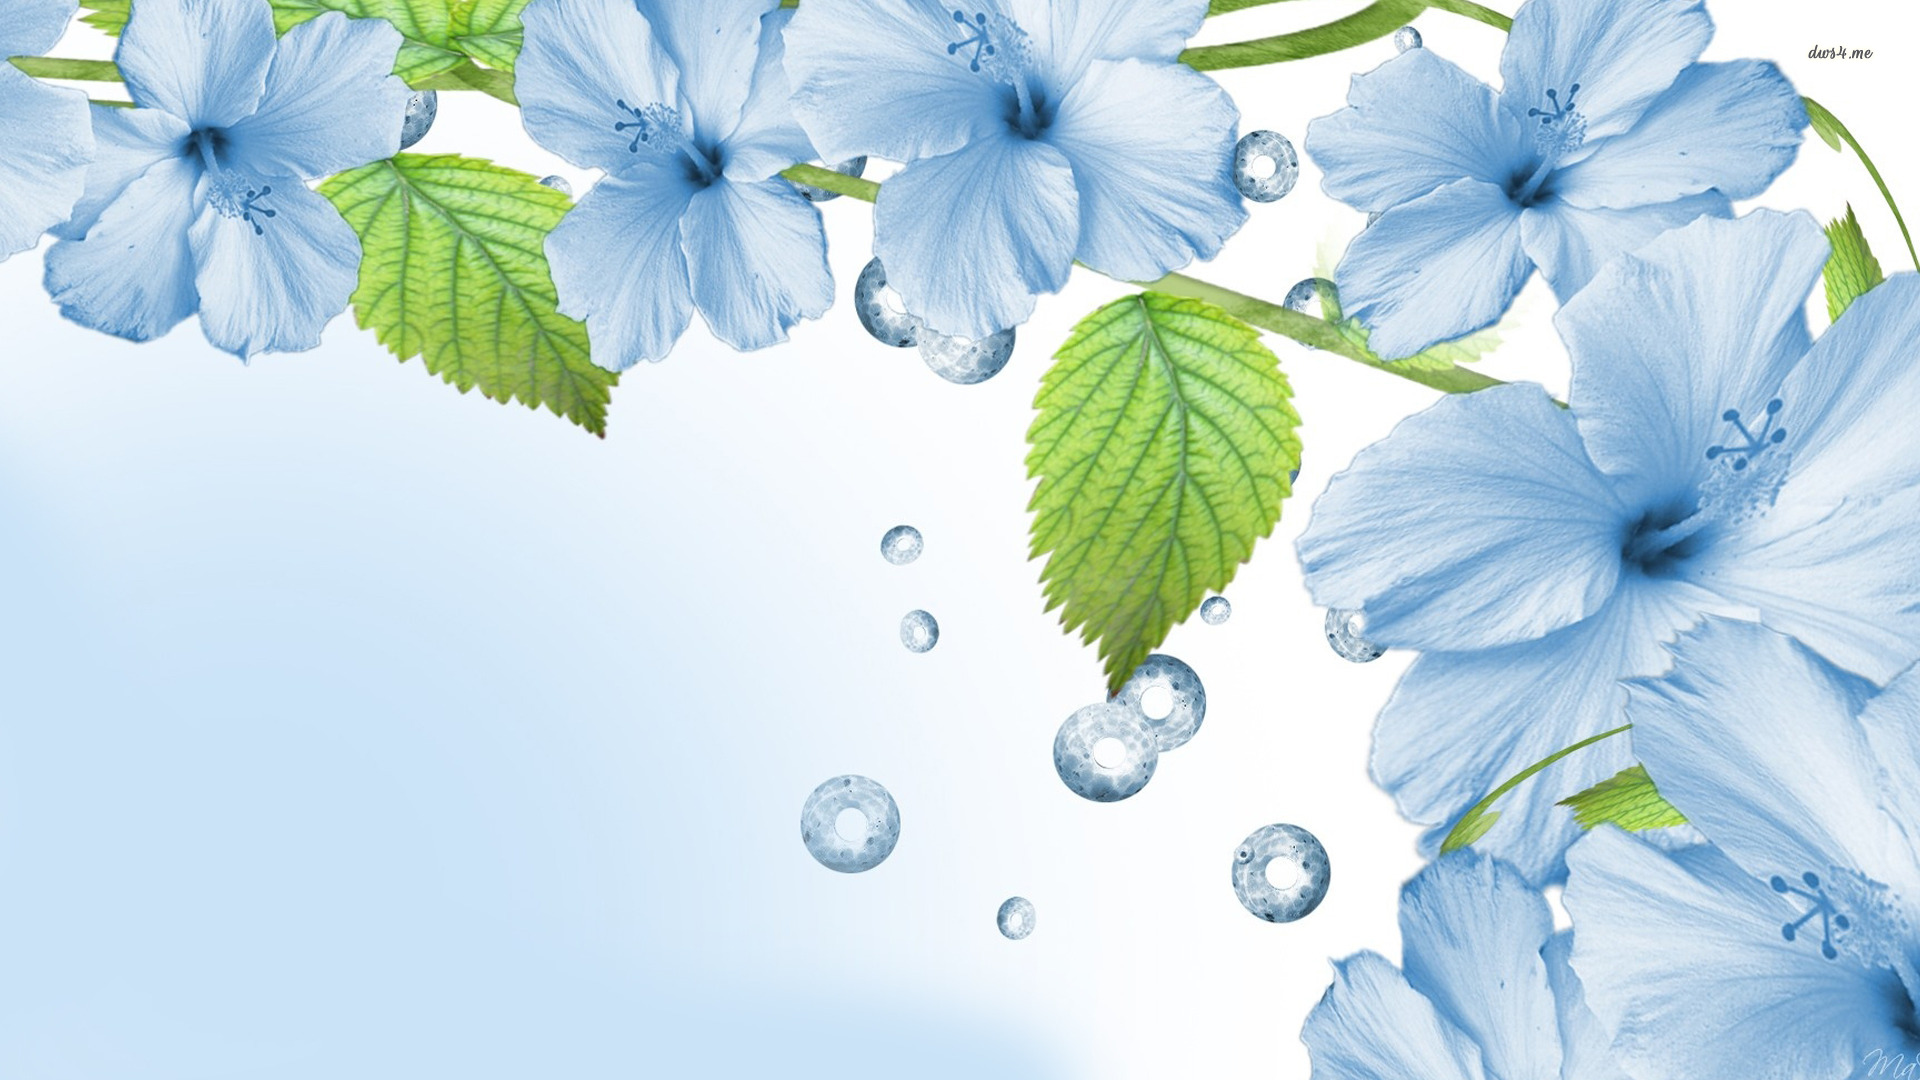 HD Blue Flower Wallpapers. Light Blue Flower Wallpaper